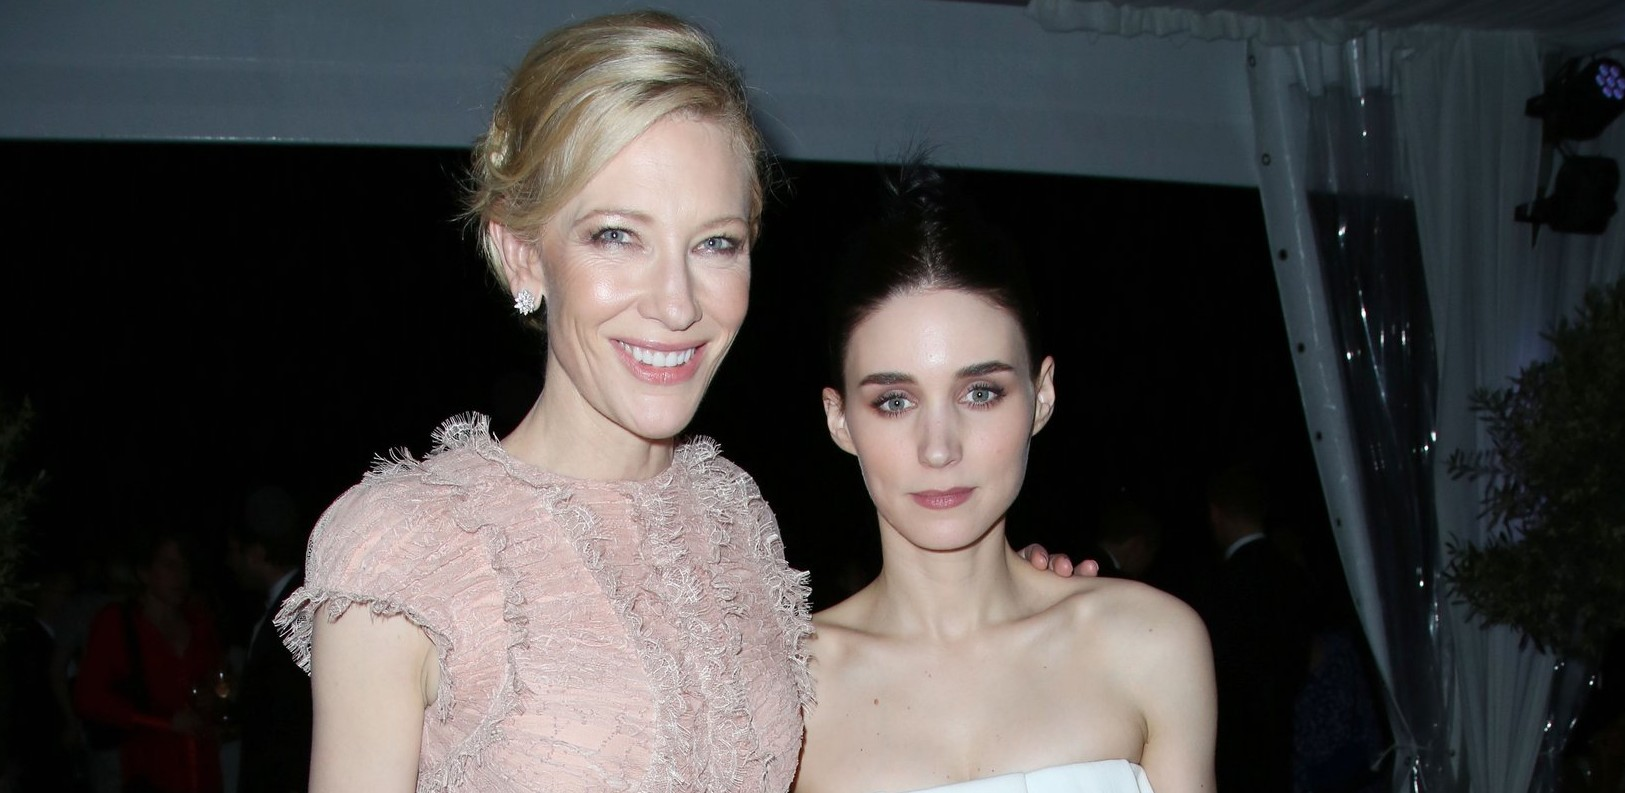 Cate Blanchett and Rooney Mara in Cannes for the Carol After Party